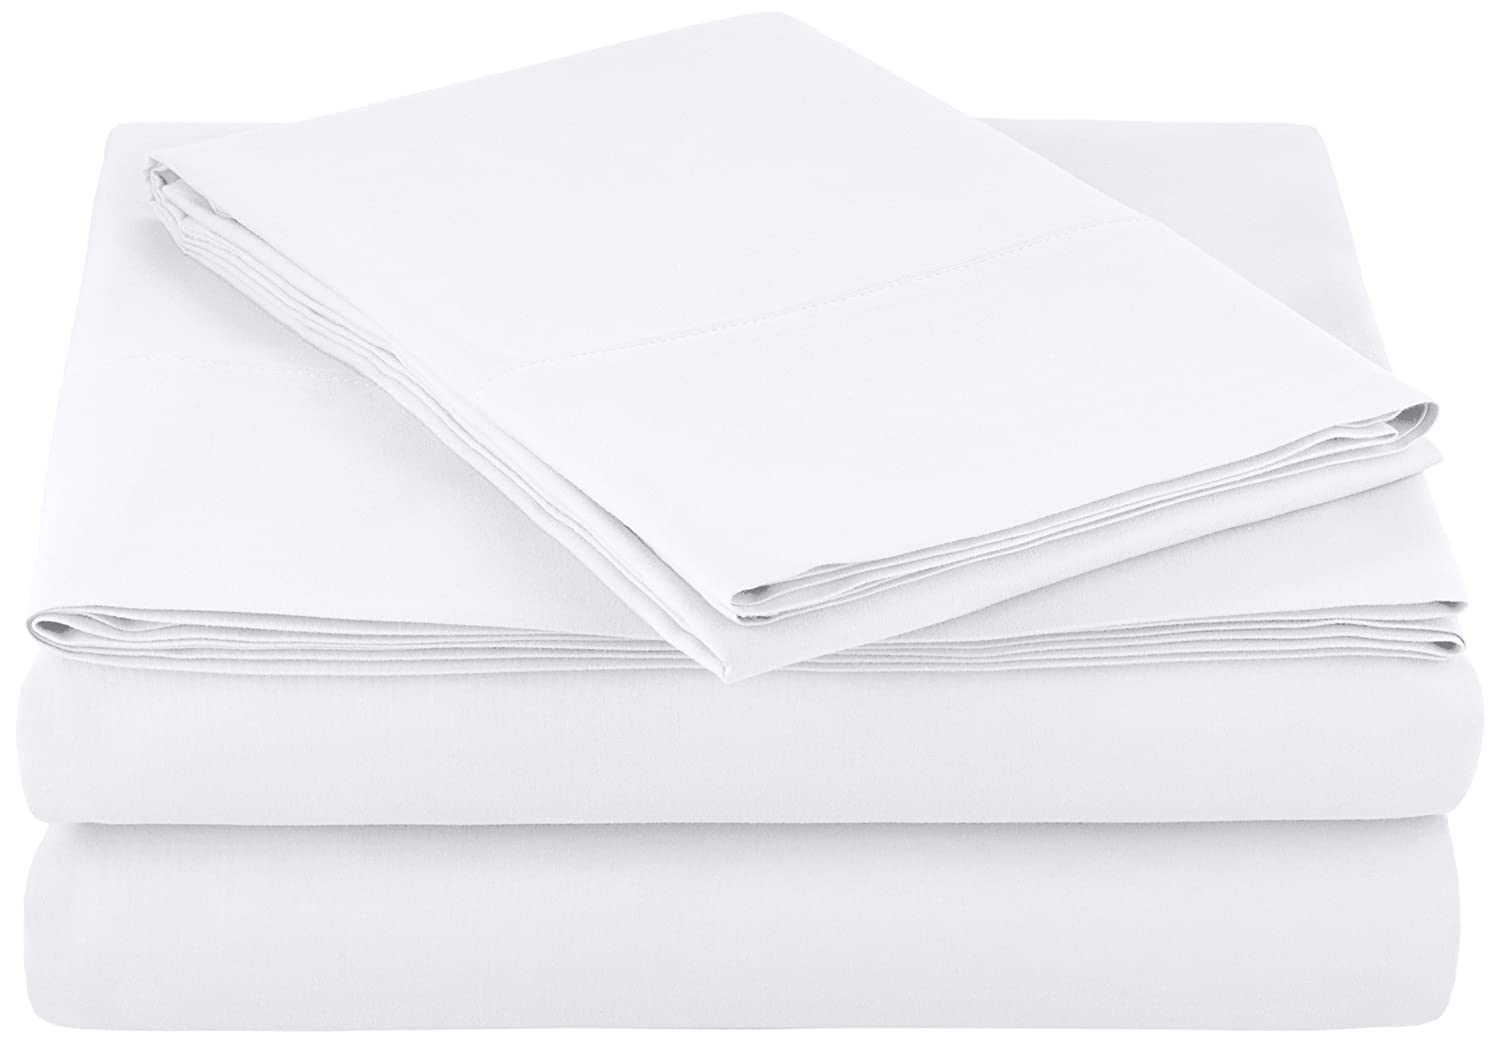 "AmazonBasics Lightweight Super Soft Easy Care Microfiber Sheet Set with 16"" Deep Pockets - Twin, Bright White, 4-Pack"